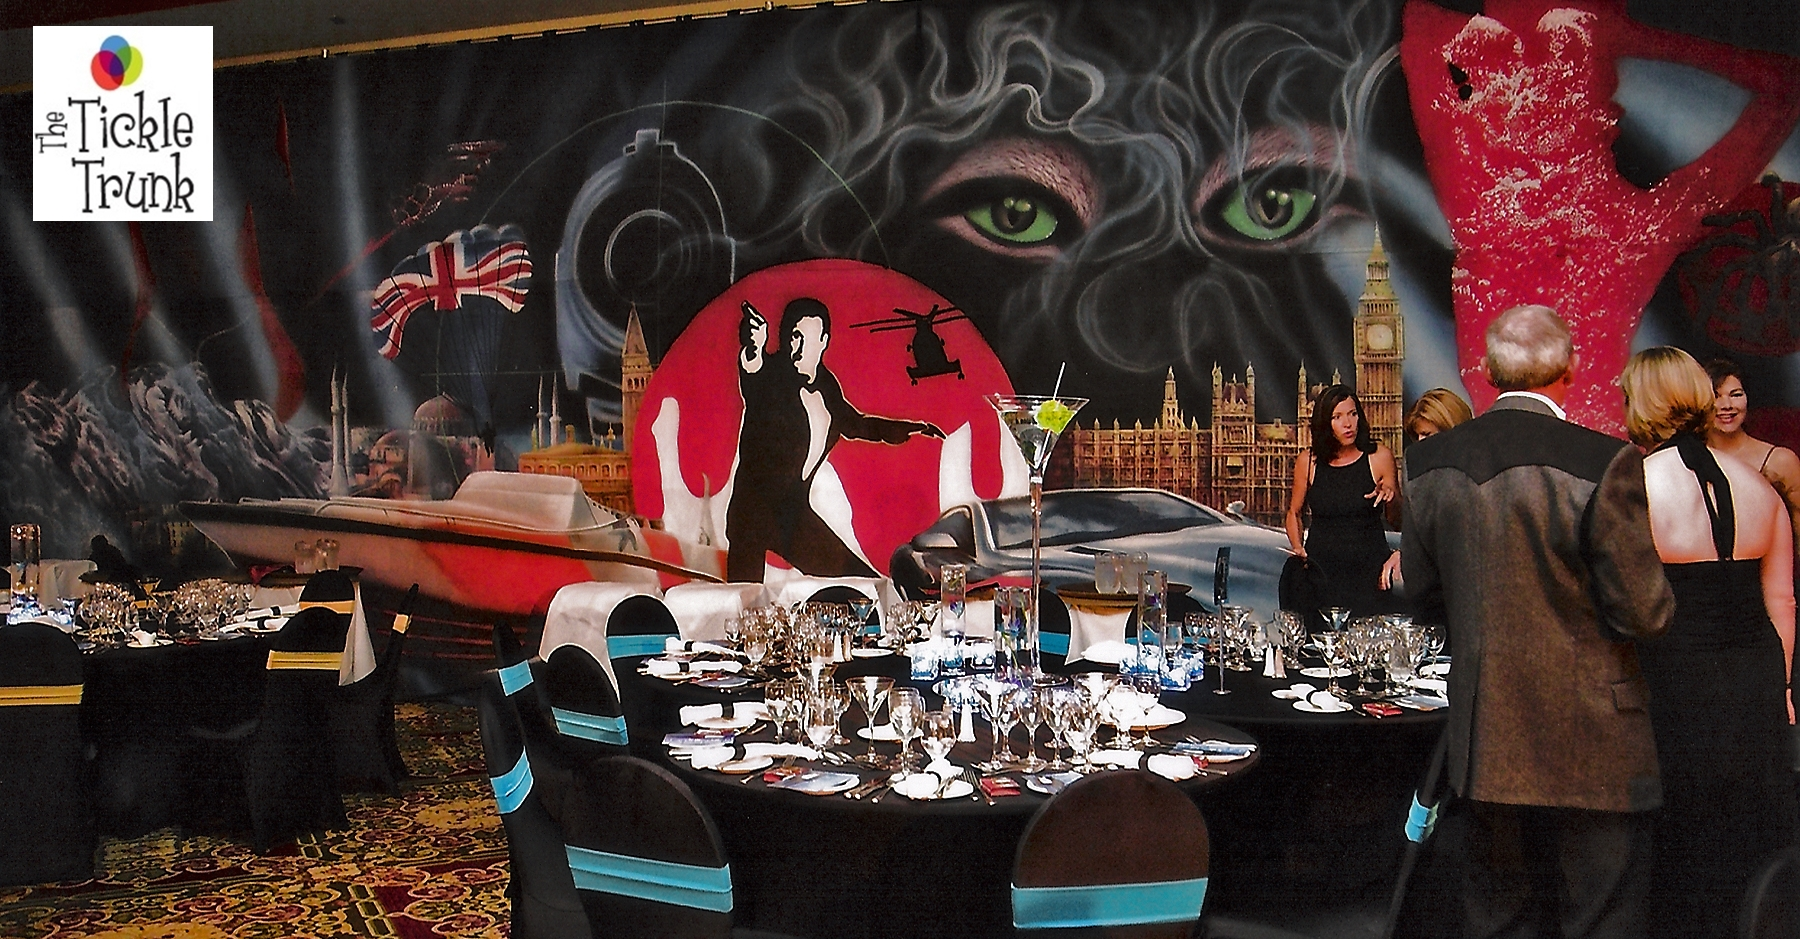 James Bond Casino Mural Décor rental